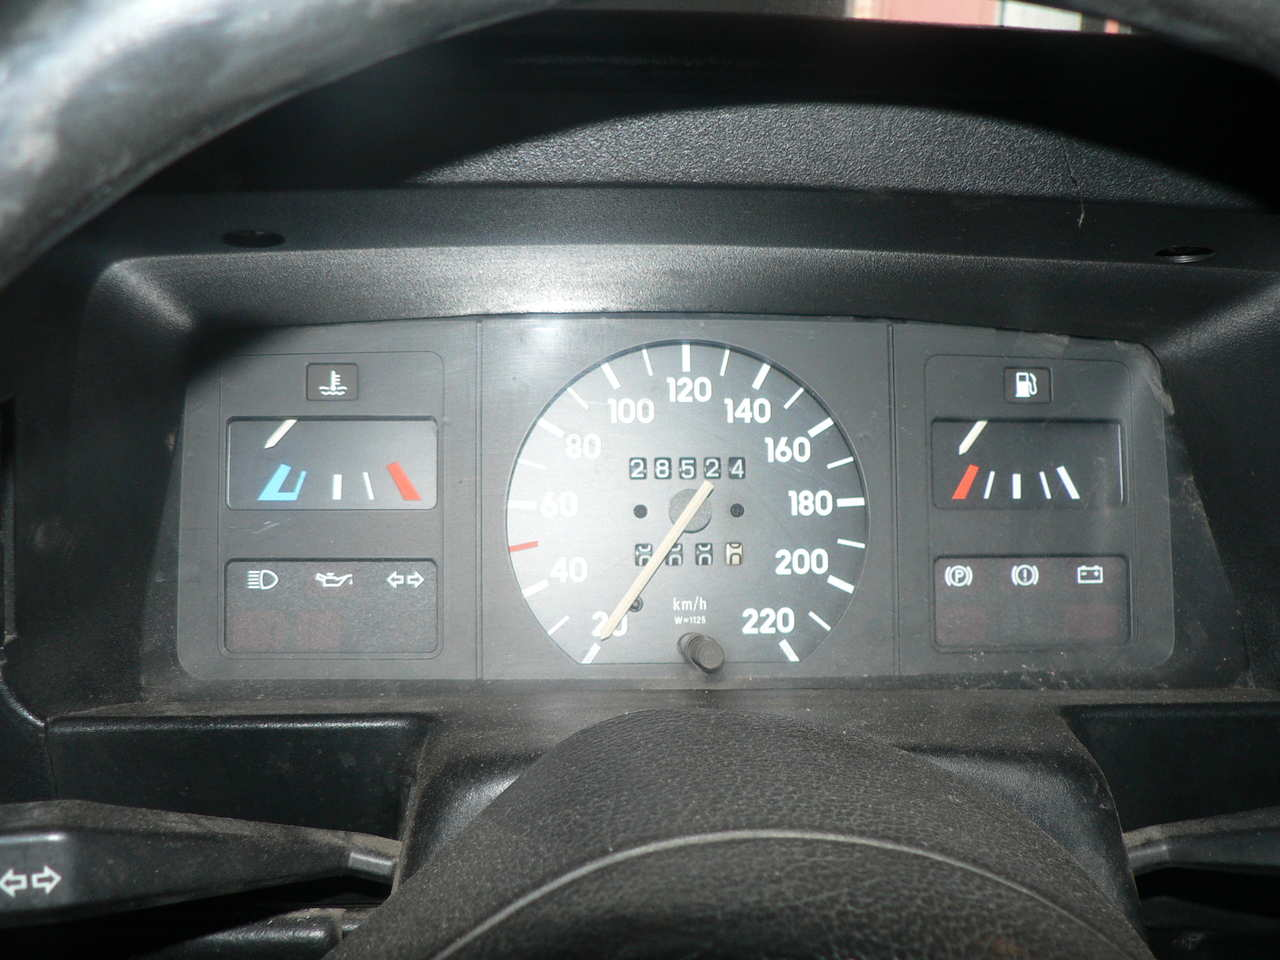 1991 Opel Kadett Photos 1 6 Gasoline Ff Manual For Sale